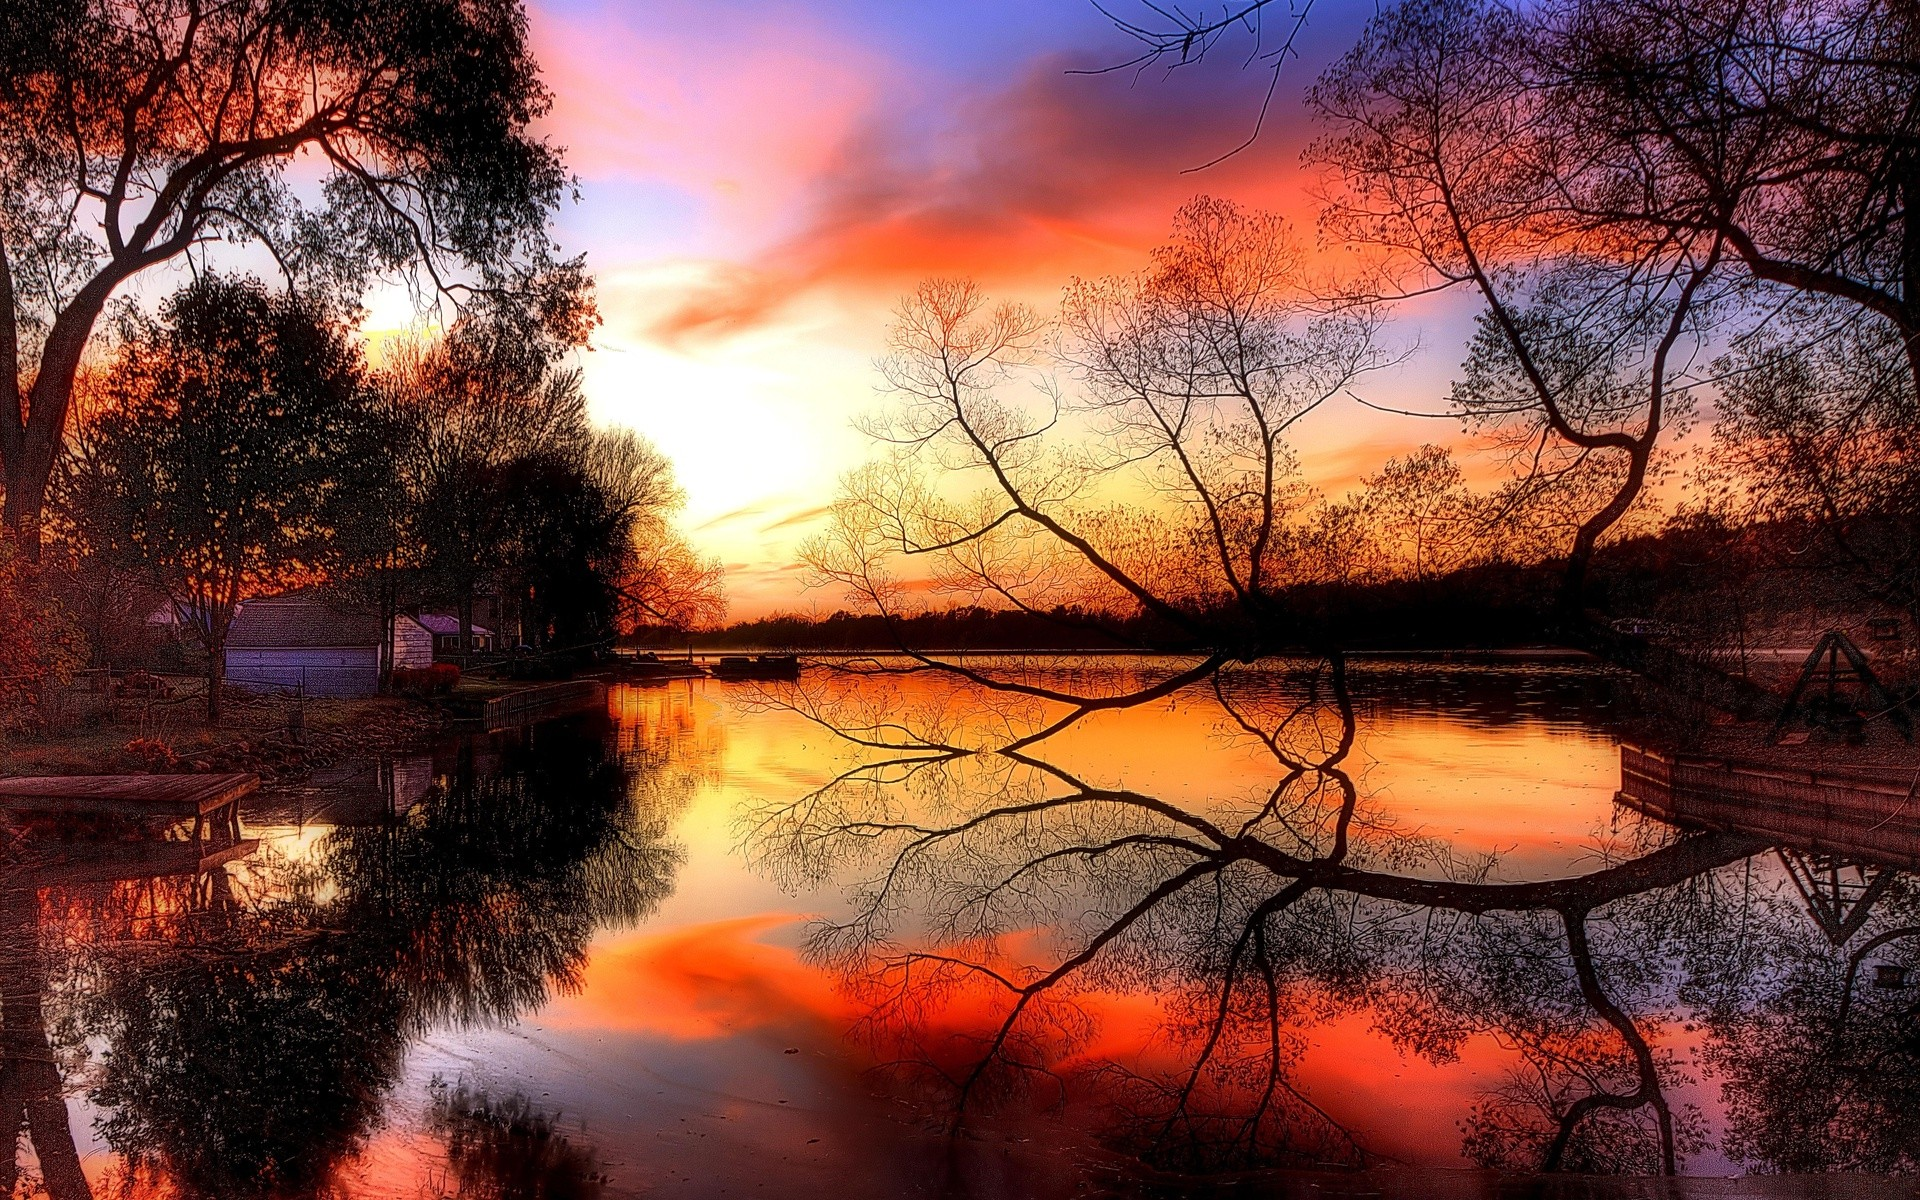 Sunsets: Beautiful Sunset Vibrant Reflection Clouds Sky Trees ...